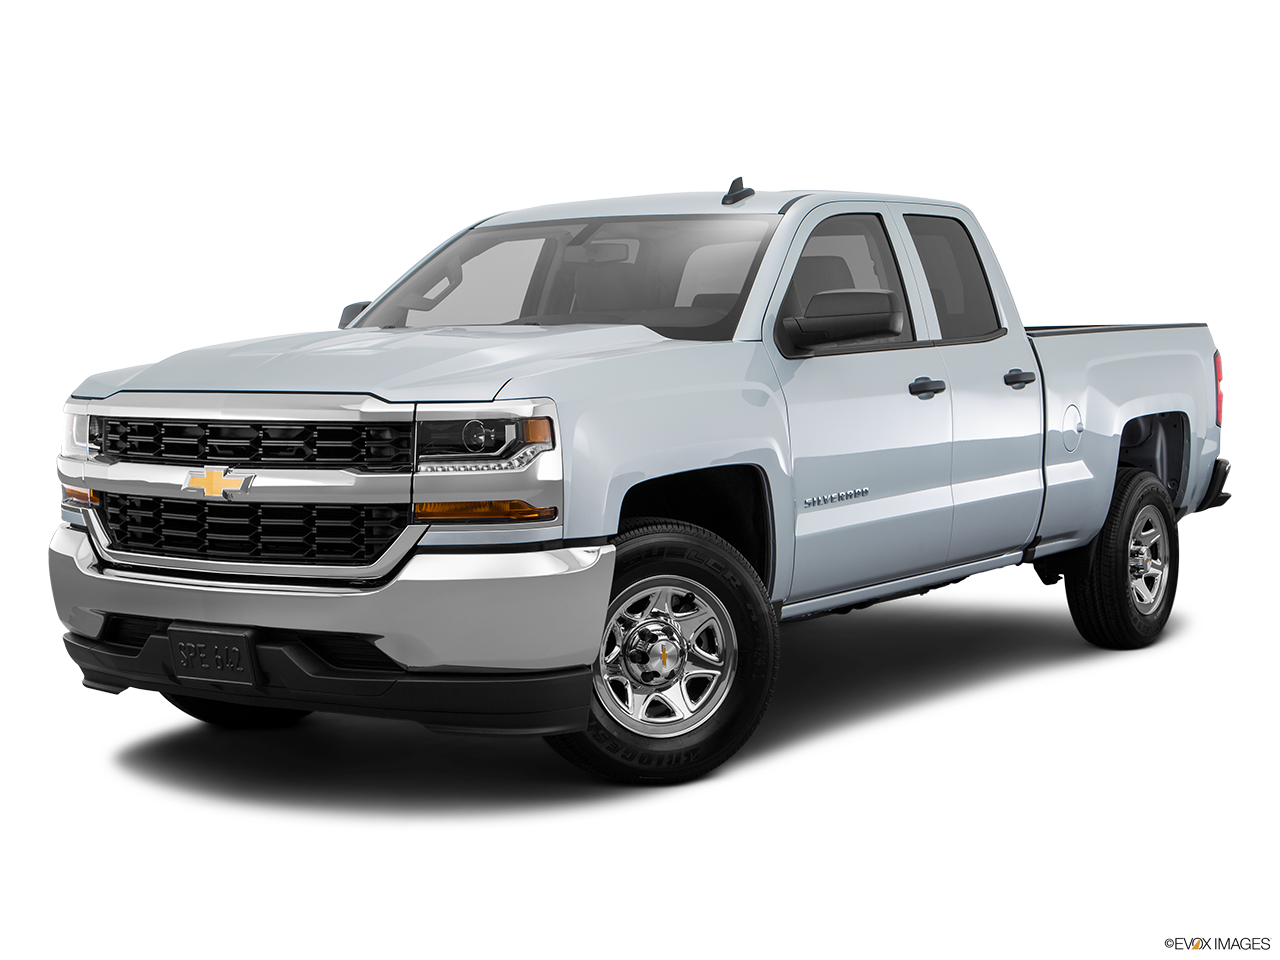 2016 chevrolet silverado 1500 dealer serving fresno madera chevrolet. Black Bedroom Furniture Sets. Home Design Ideas